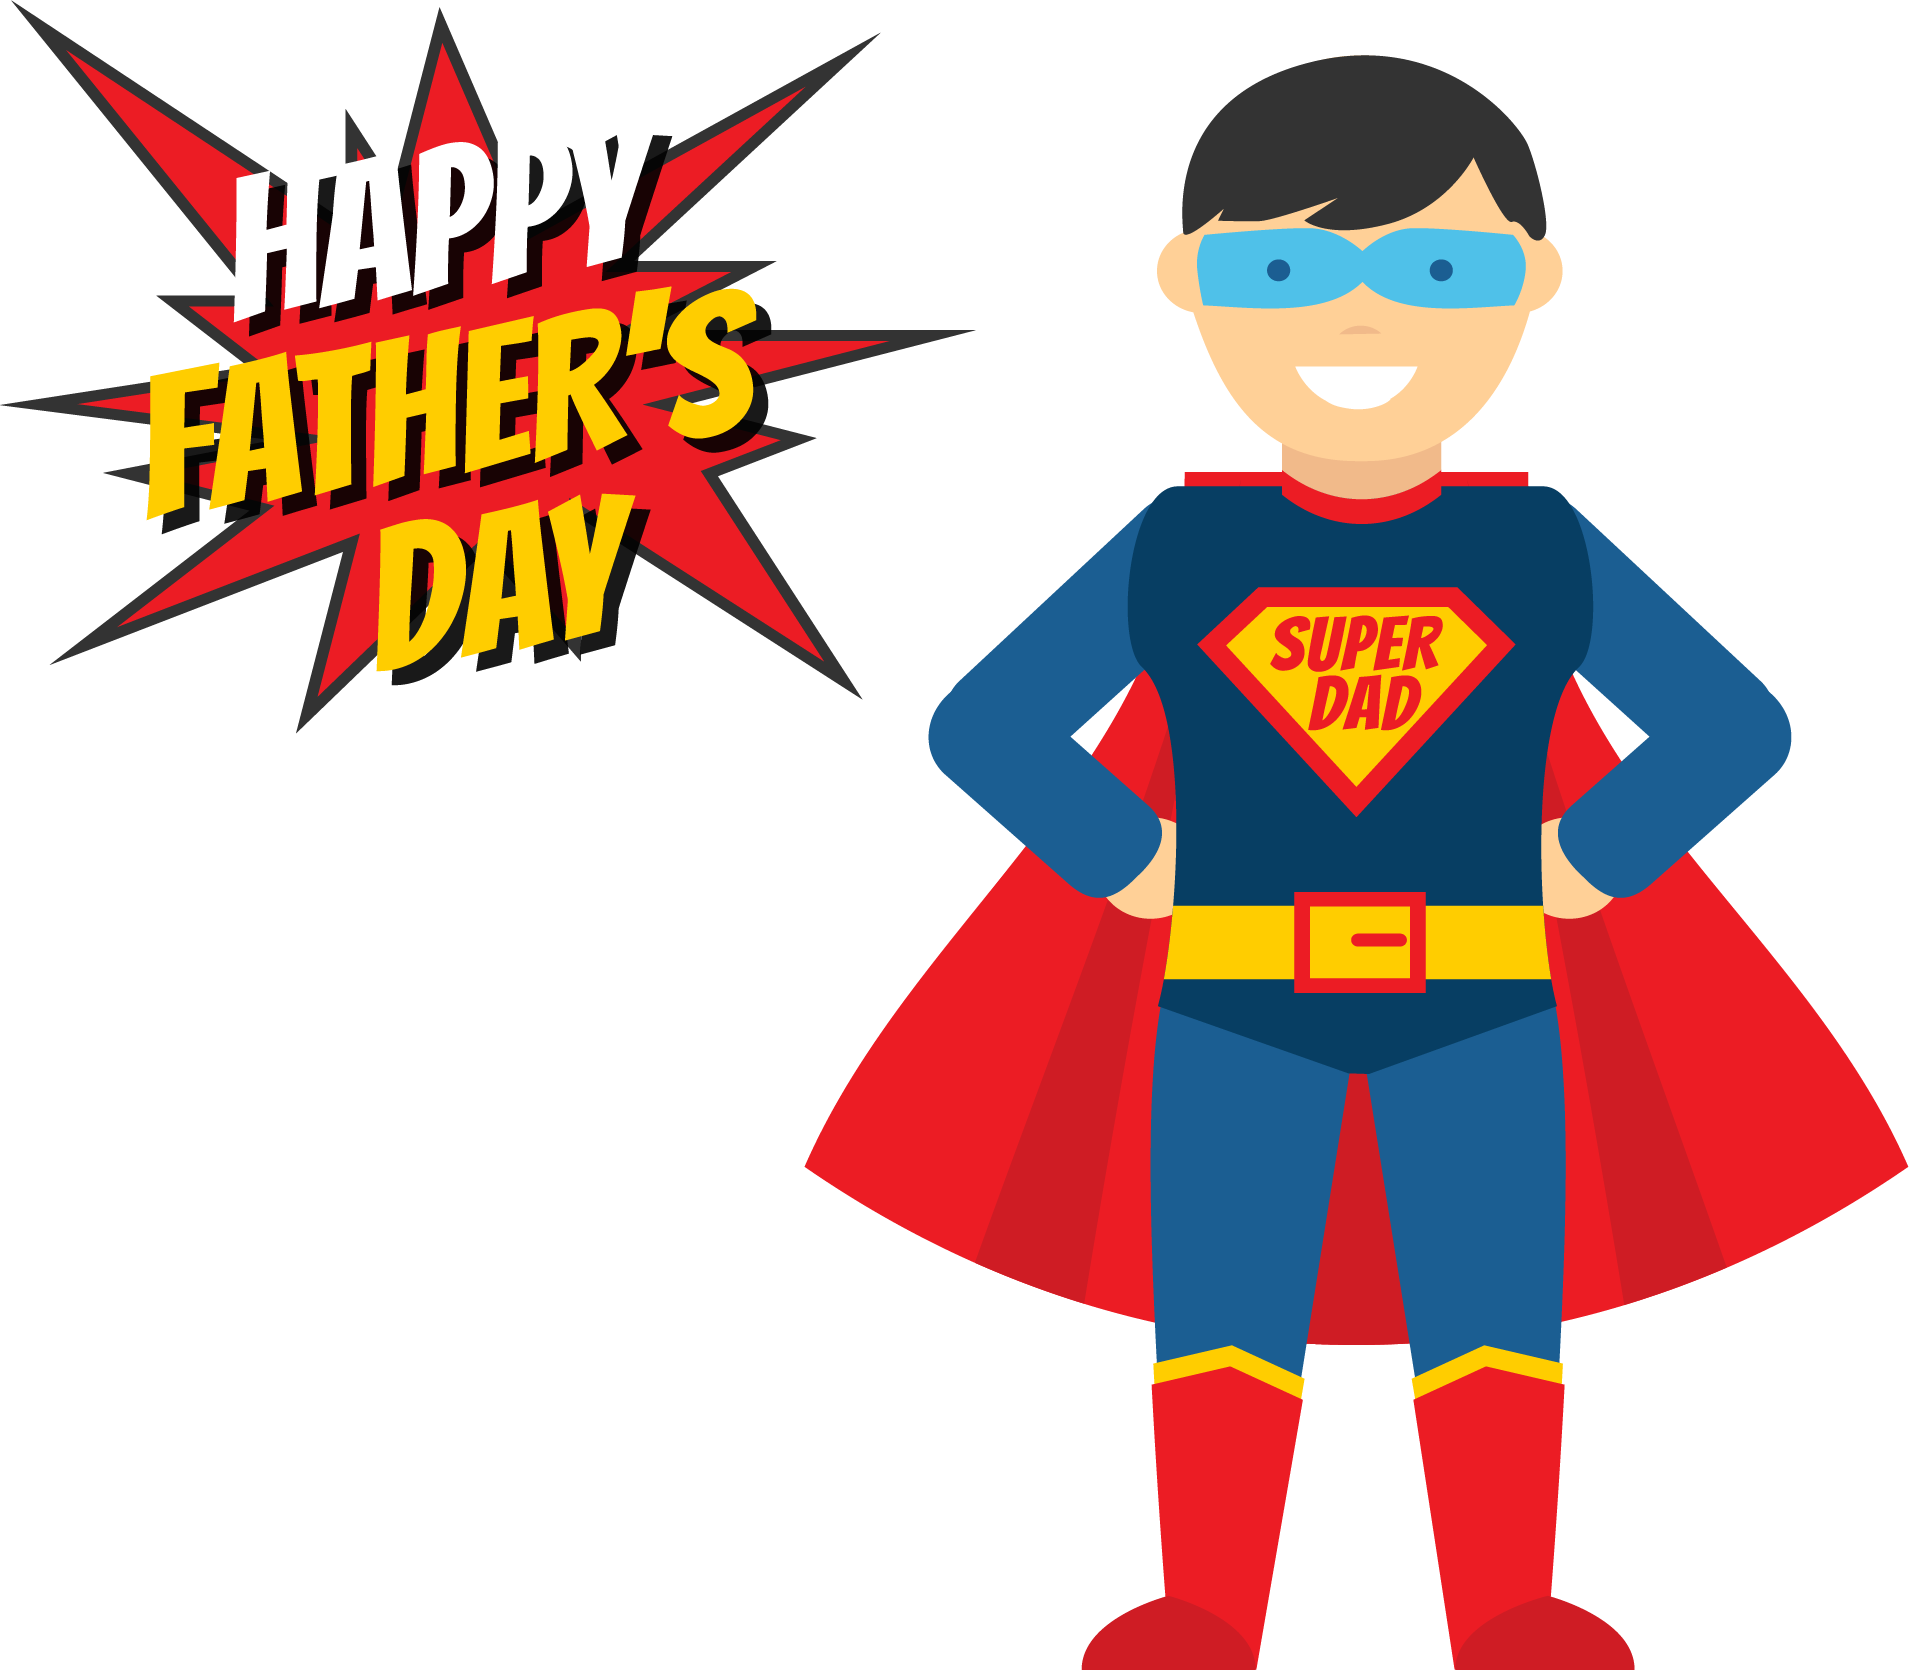 clip art royalty free library Fathers Day Superhero Illustration